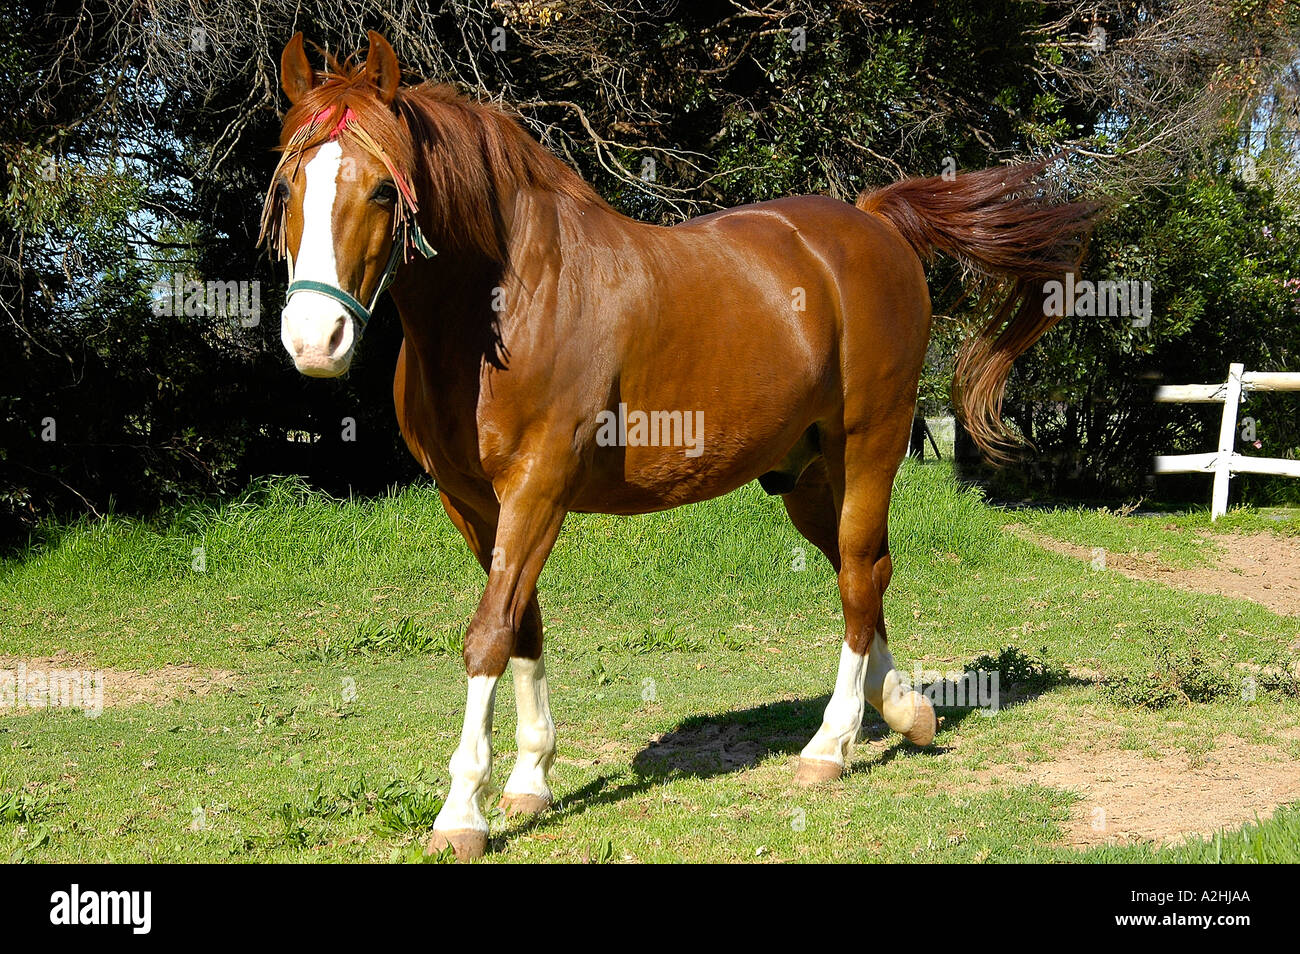 South African Bred Boerperd Stallion A Cross Between Arab And Basotho Stock Photo Alamy